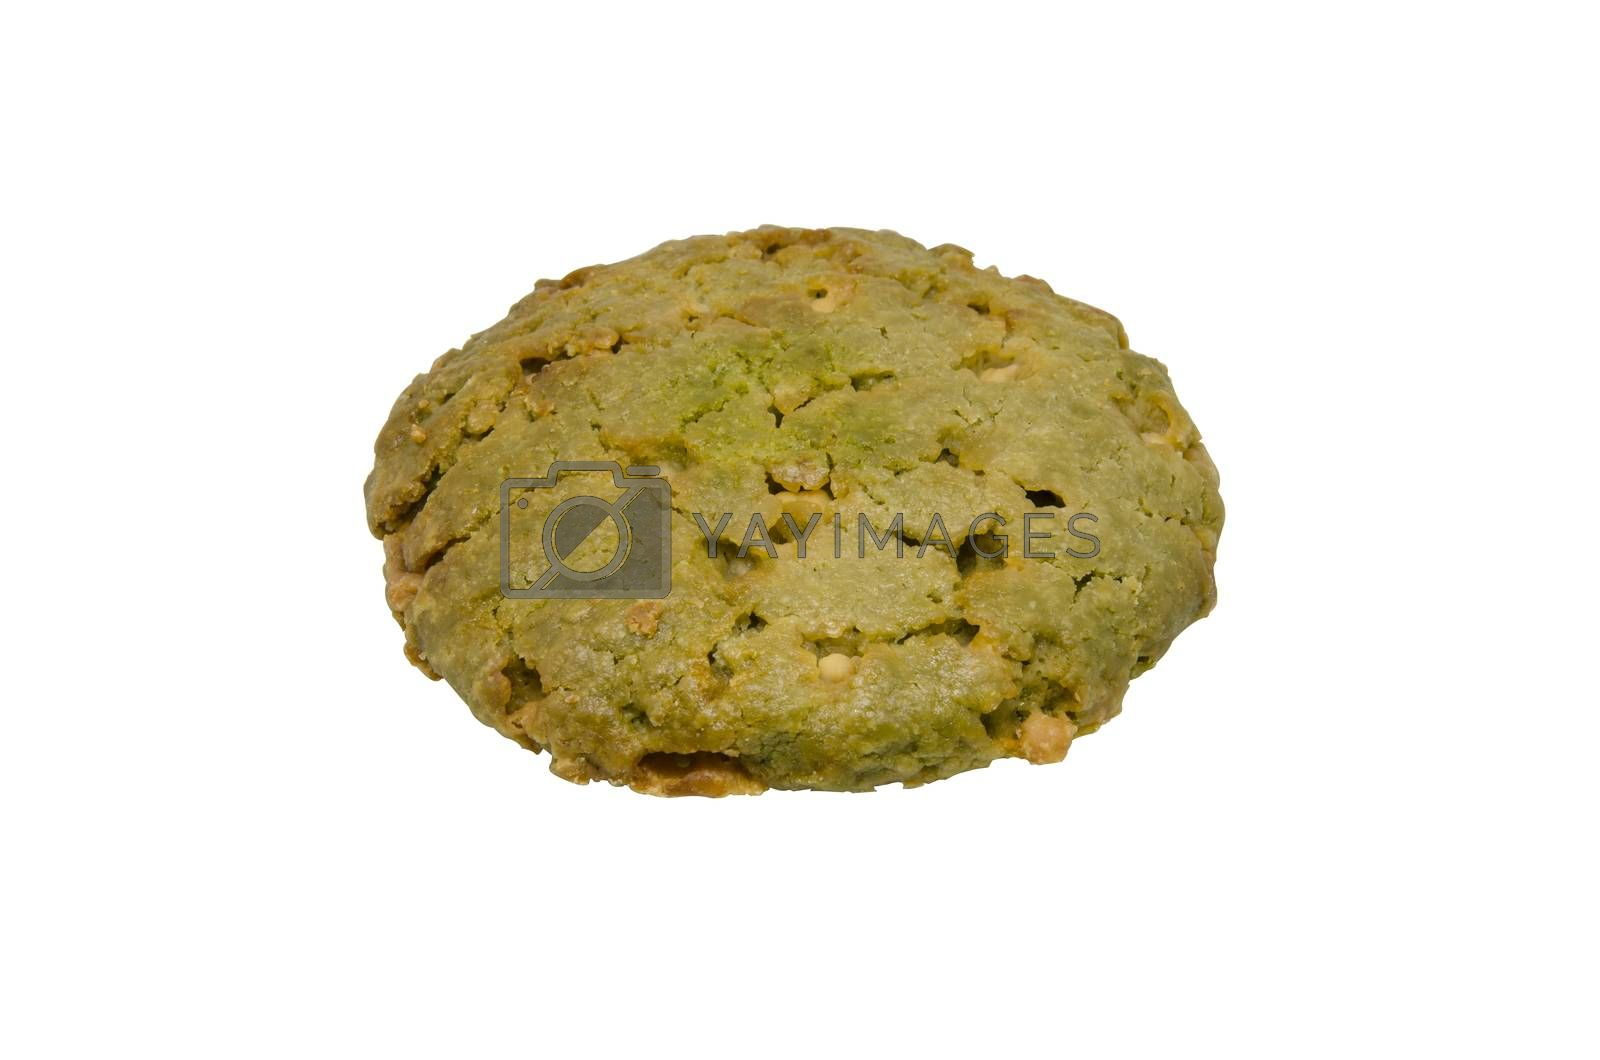 Oatmeal cookies isolated on white background clipping path